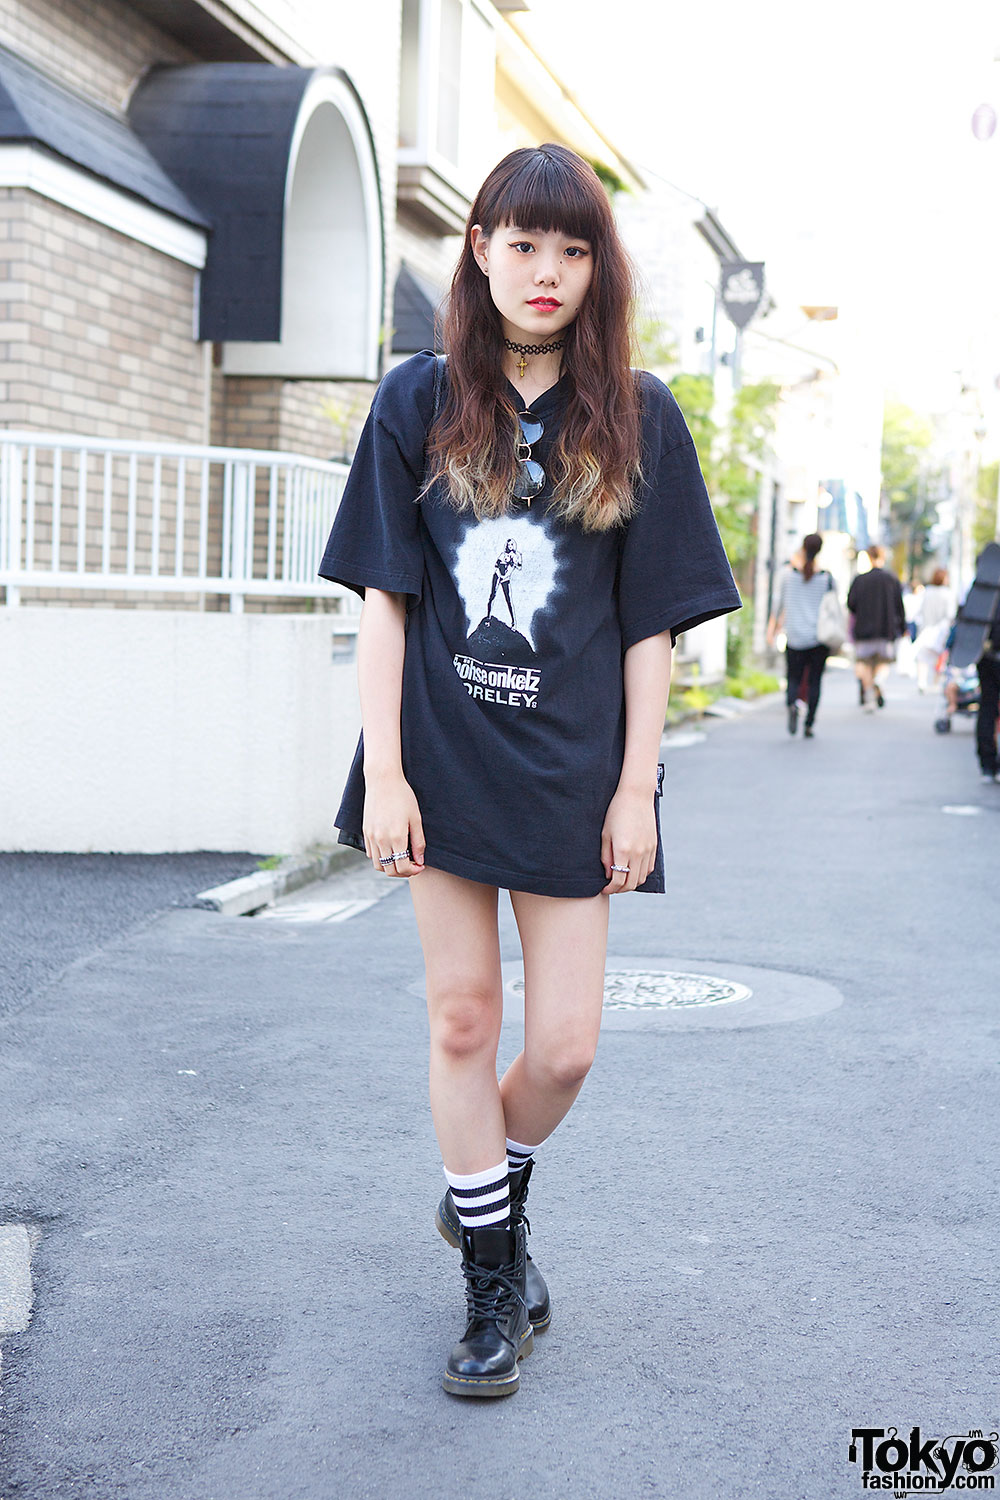 Black t shirt outfit tumblr - Oversized Band T Shirt W Dr Martens Choker Studded Rings In Harajuku